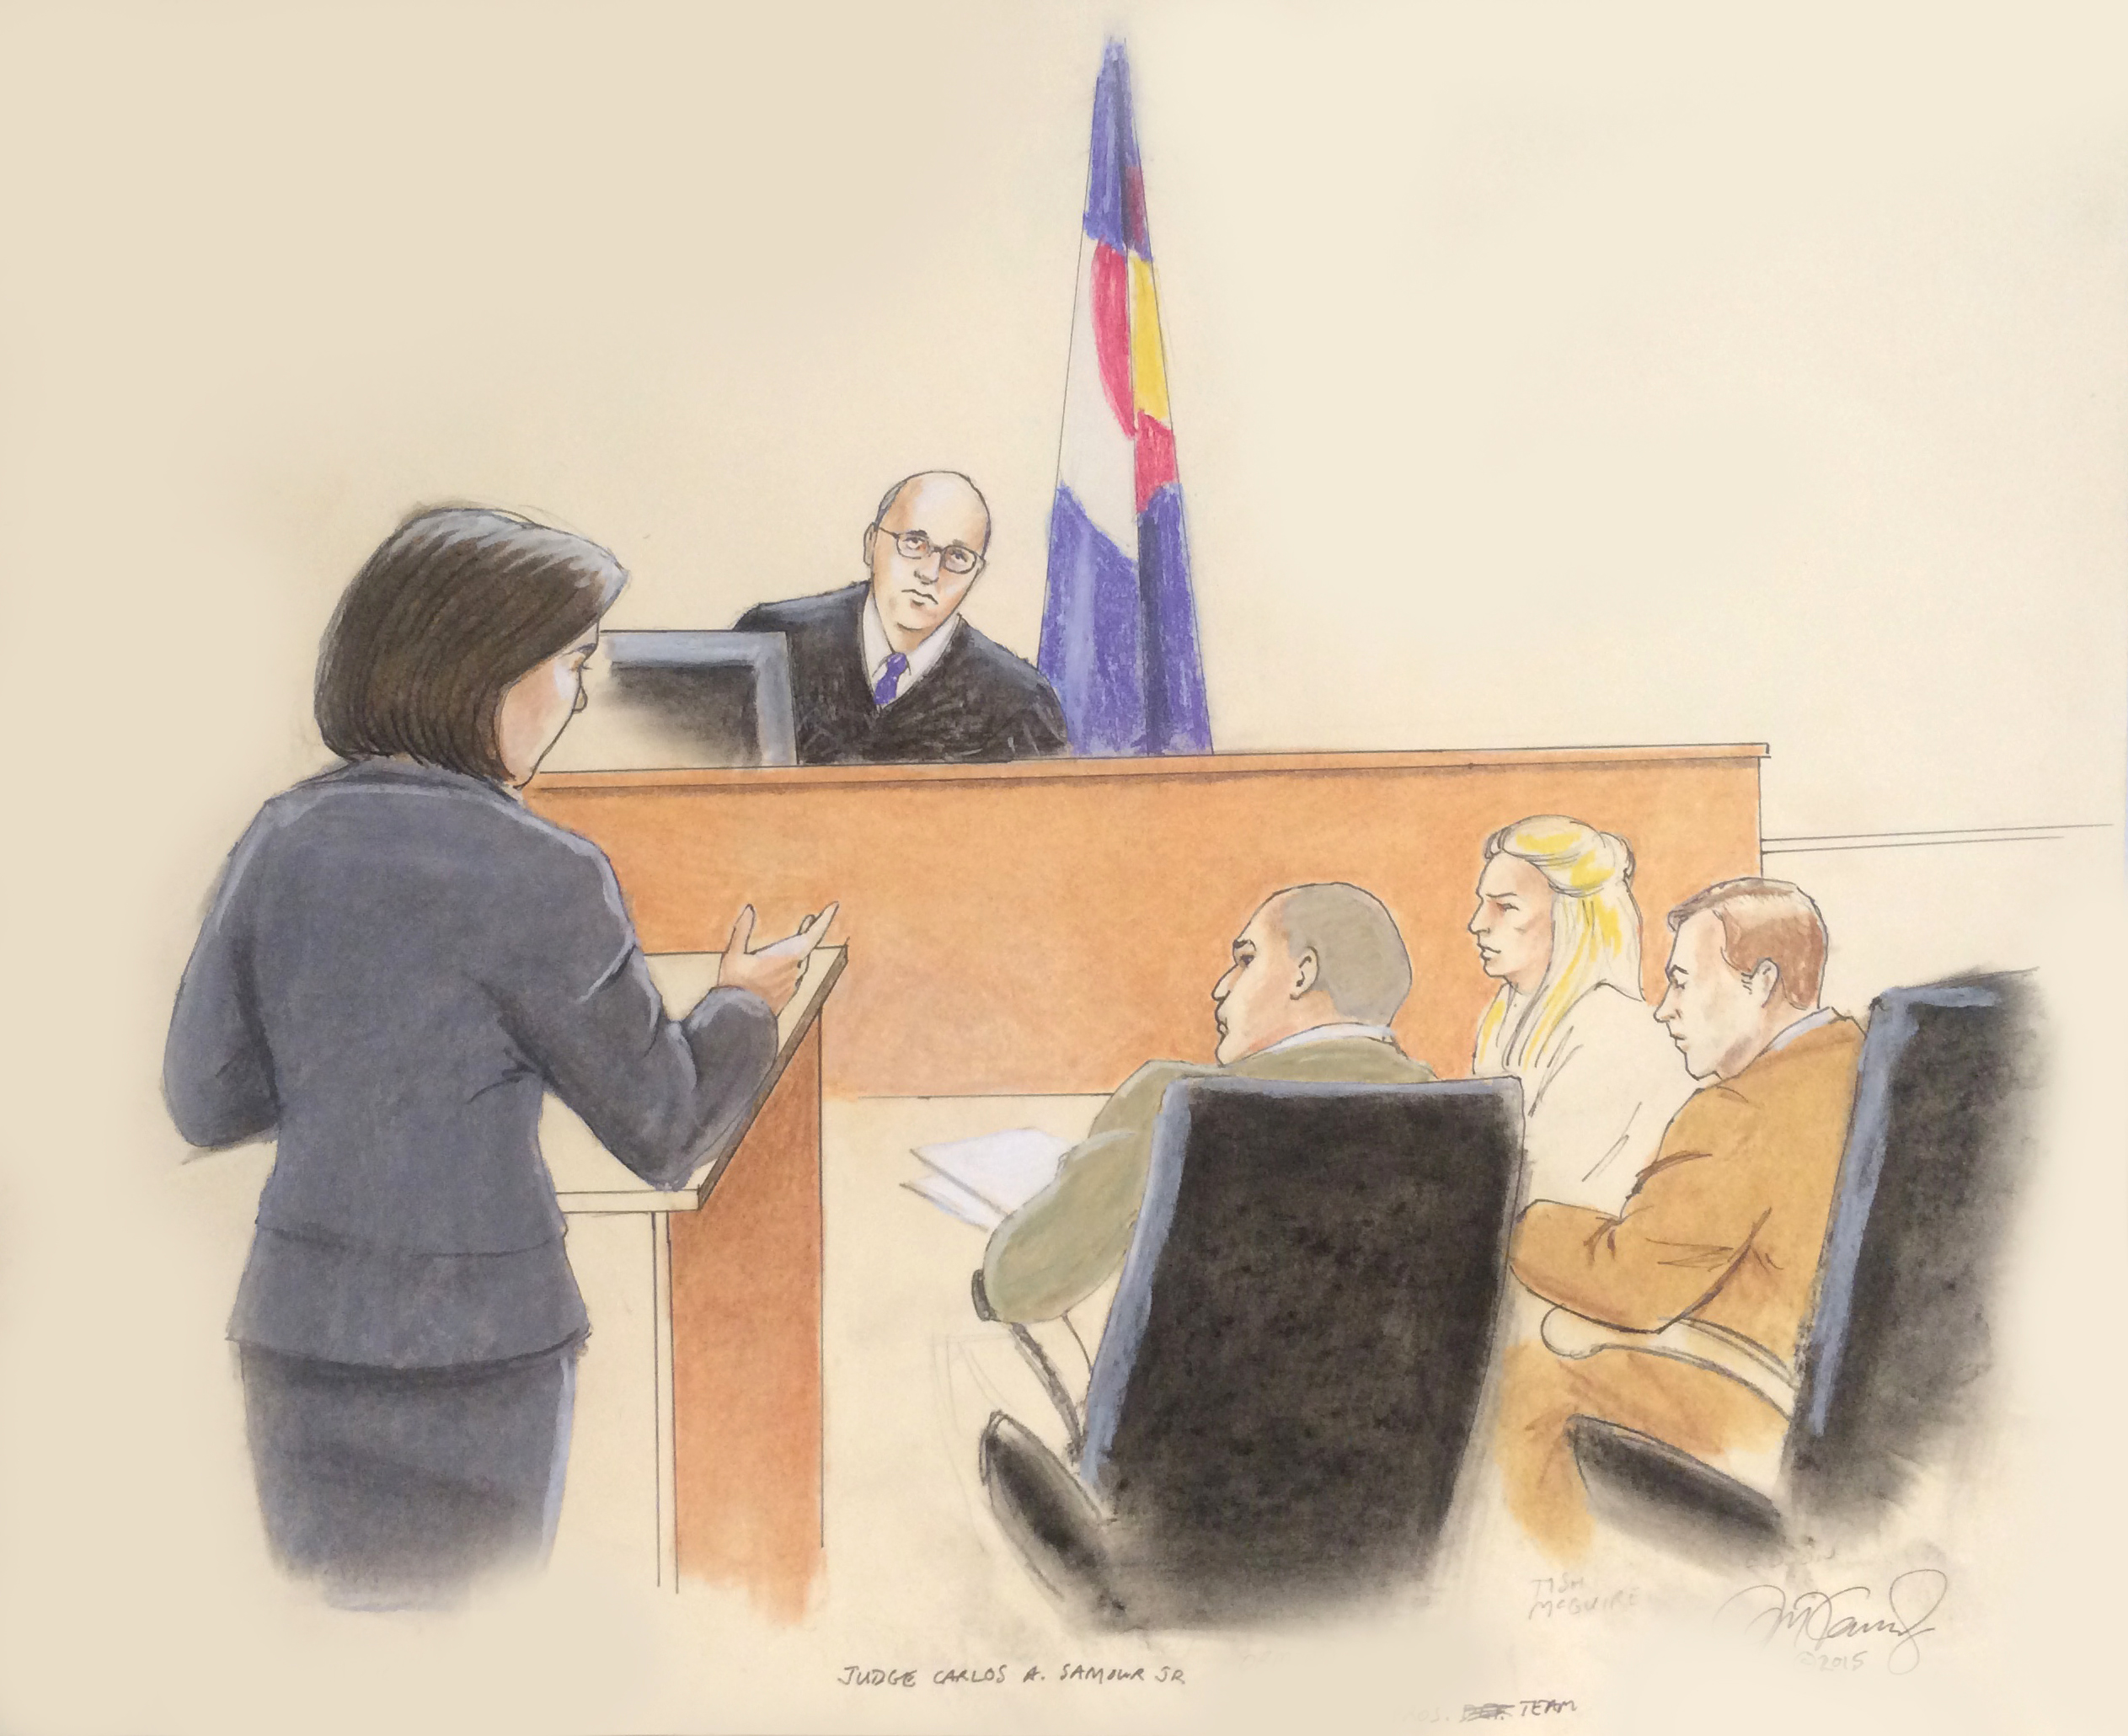 Photo: Aurora theater shooting jury selection sketch